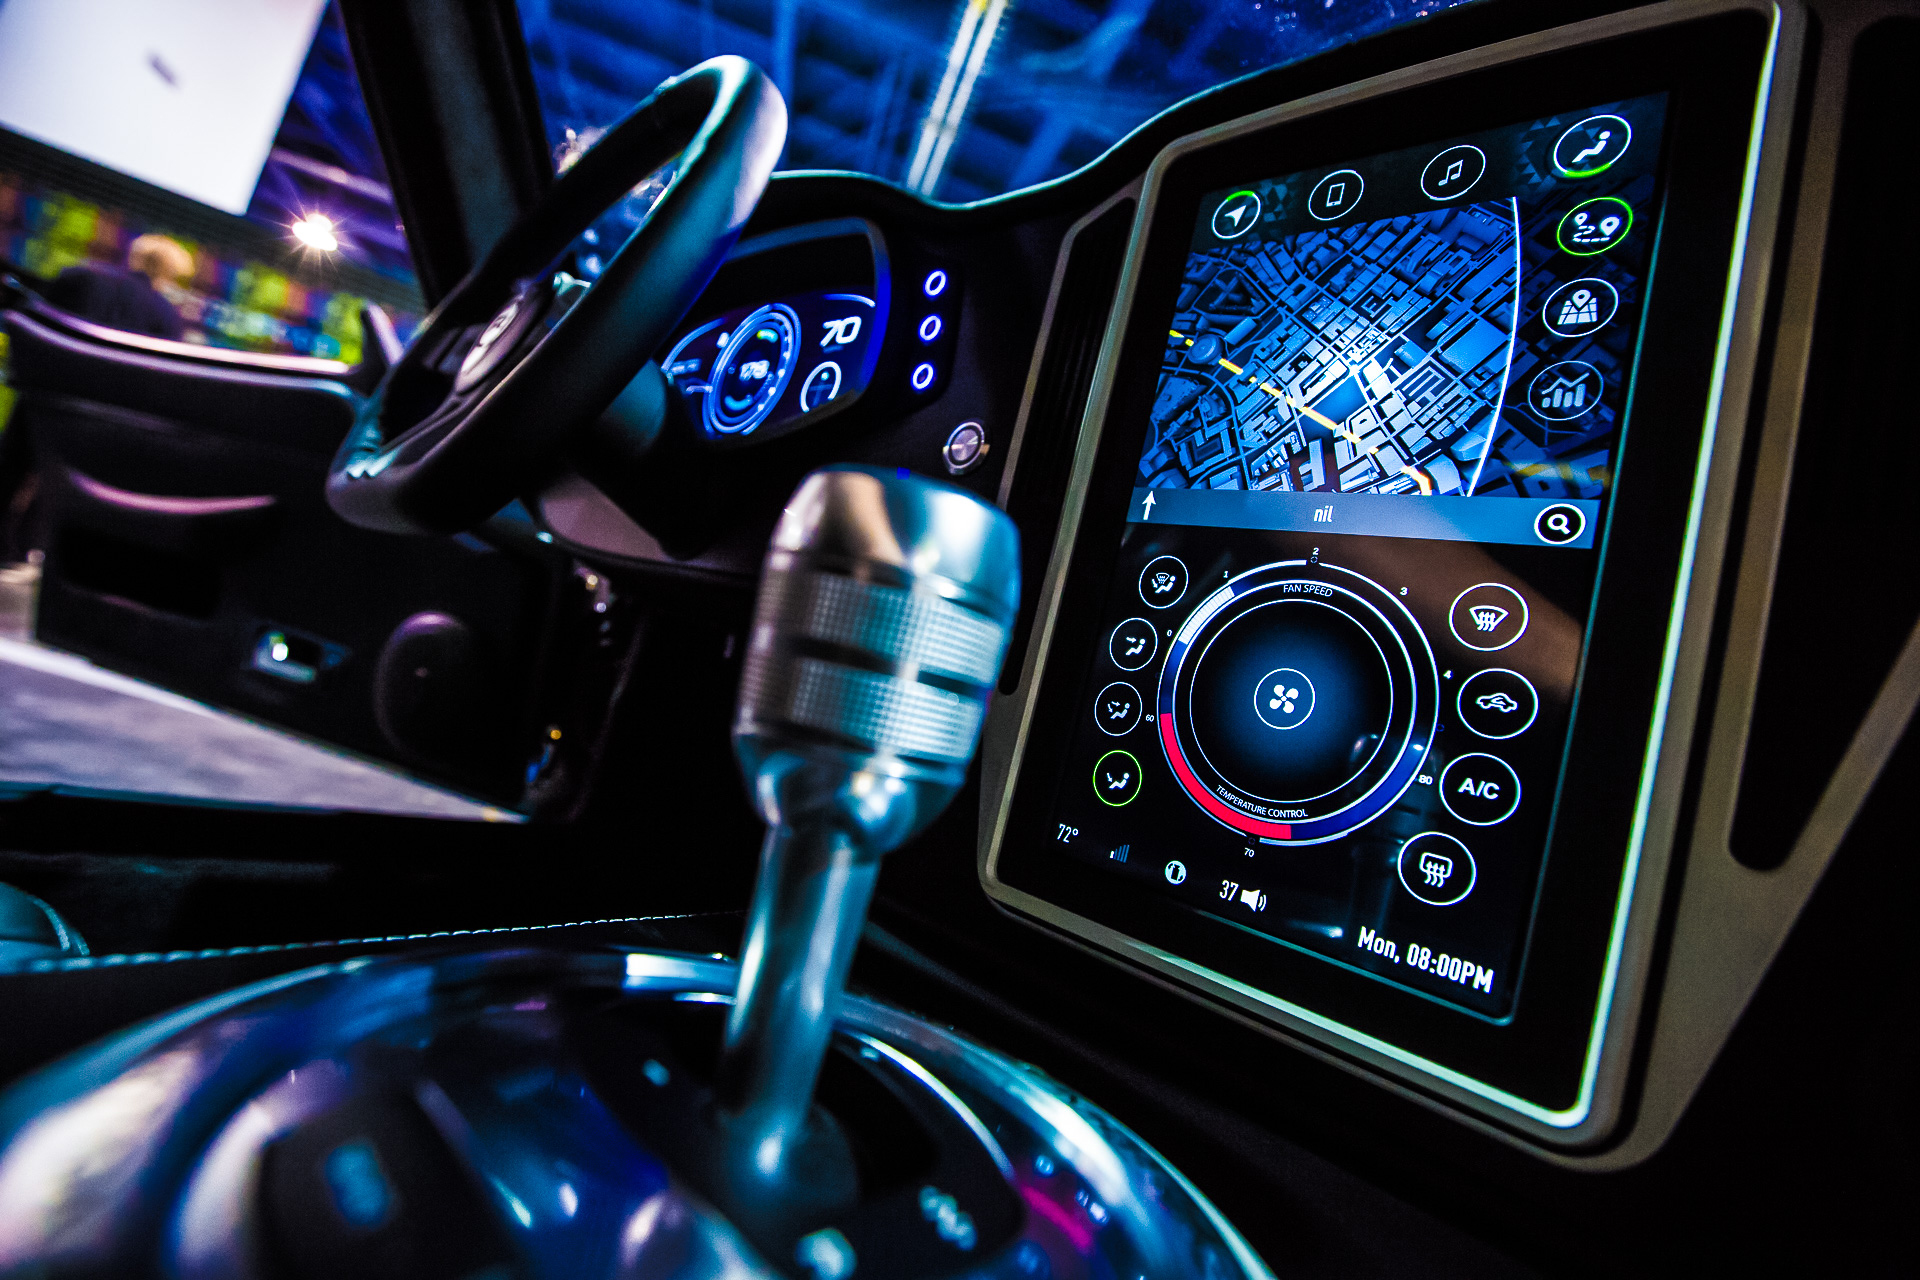 6 Best Touch Screen Car Stereos